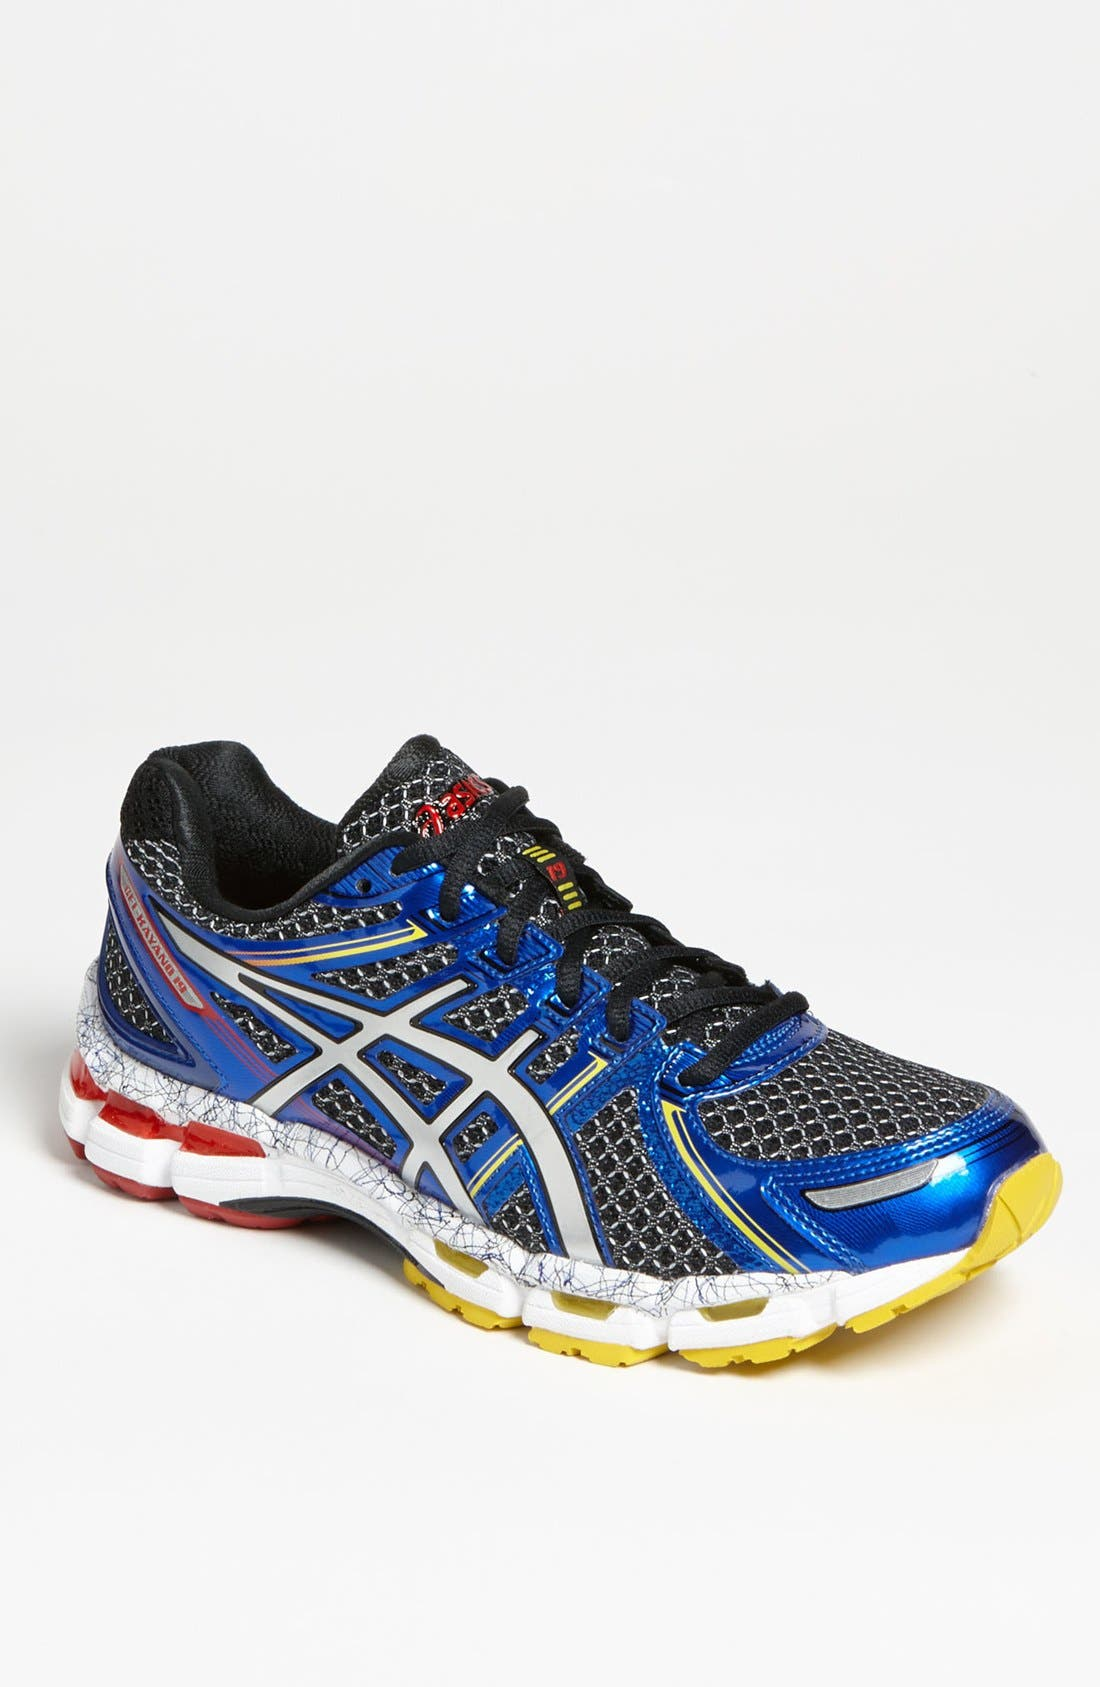 Alternate Image 1 Selected - ASICS® 'GEL-Kayano® 19' Running Shoe (Men) (Online Only)